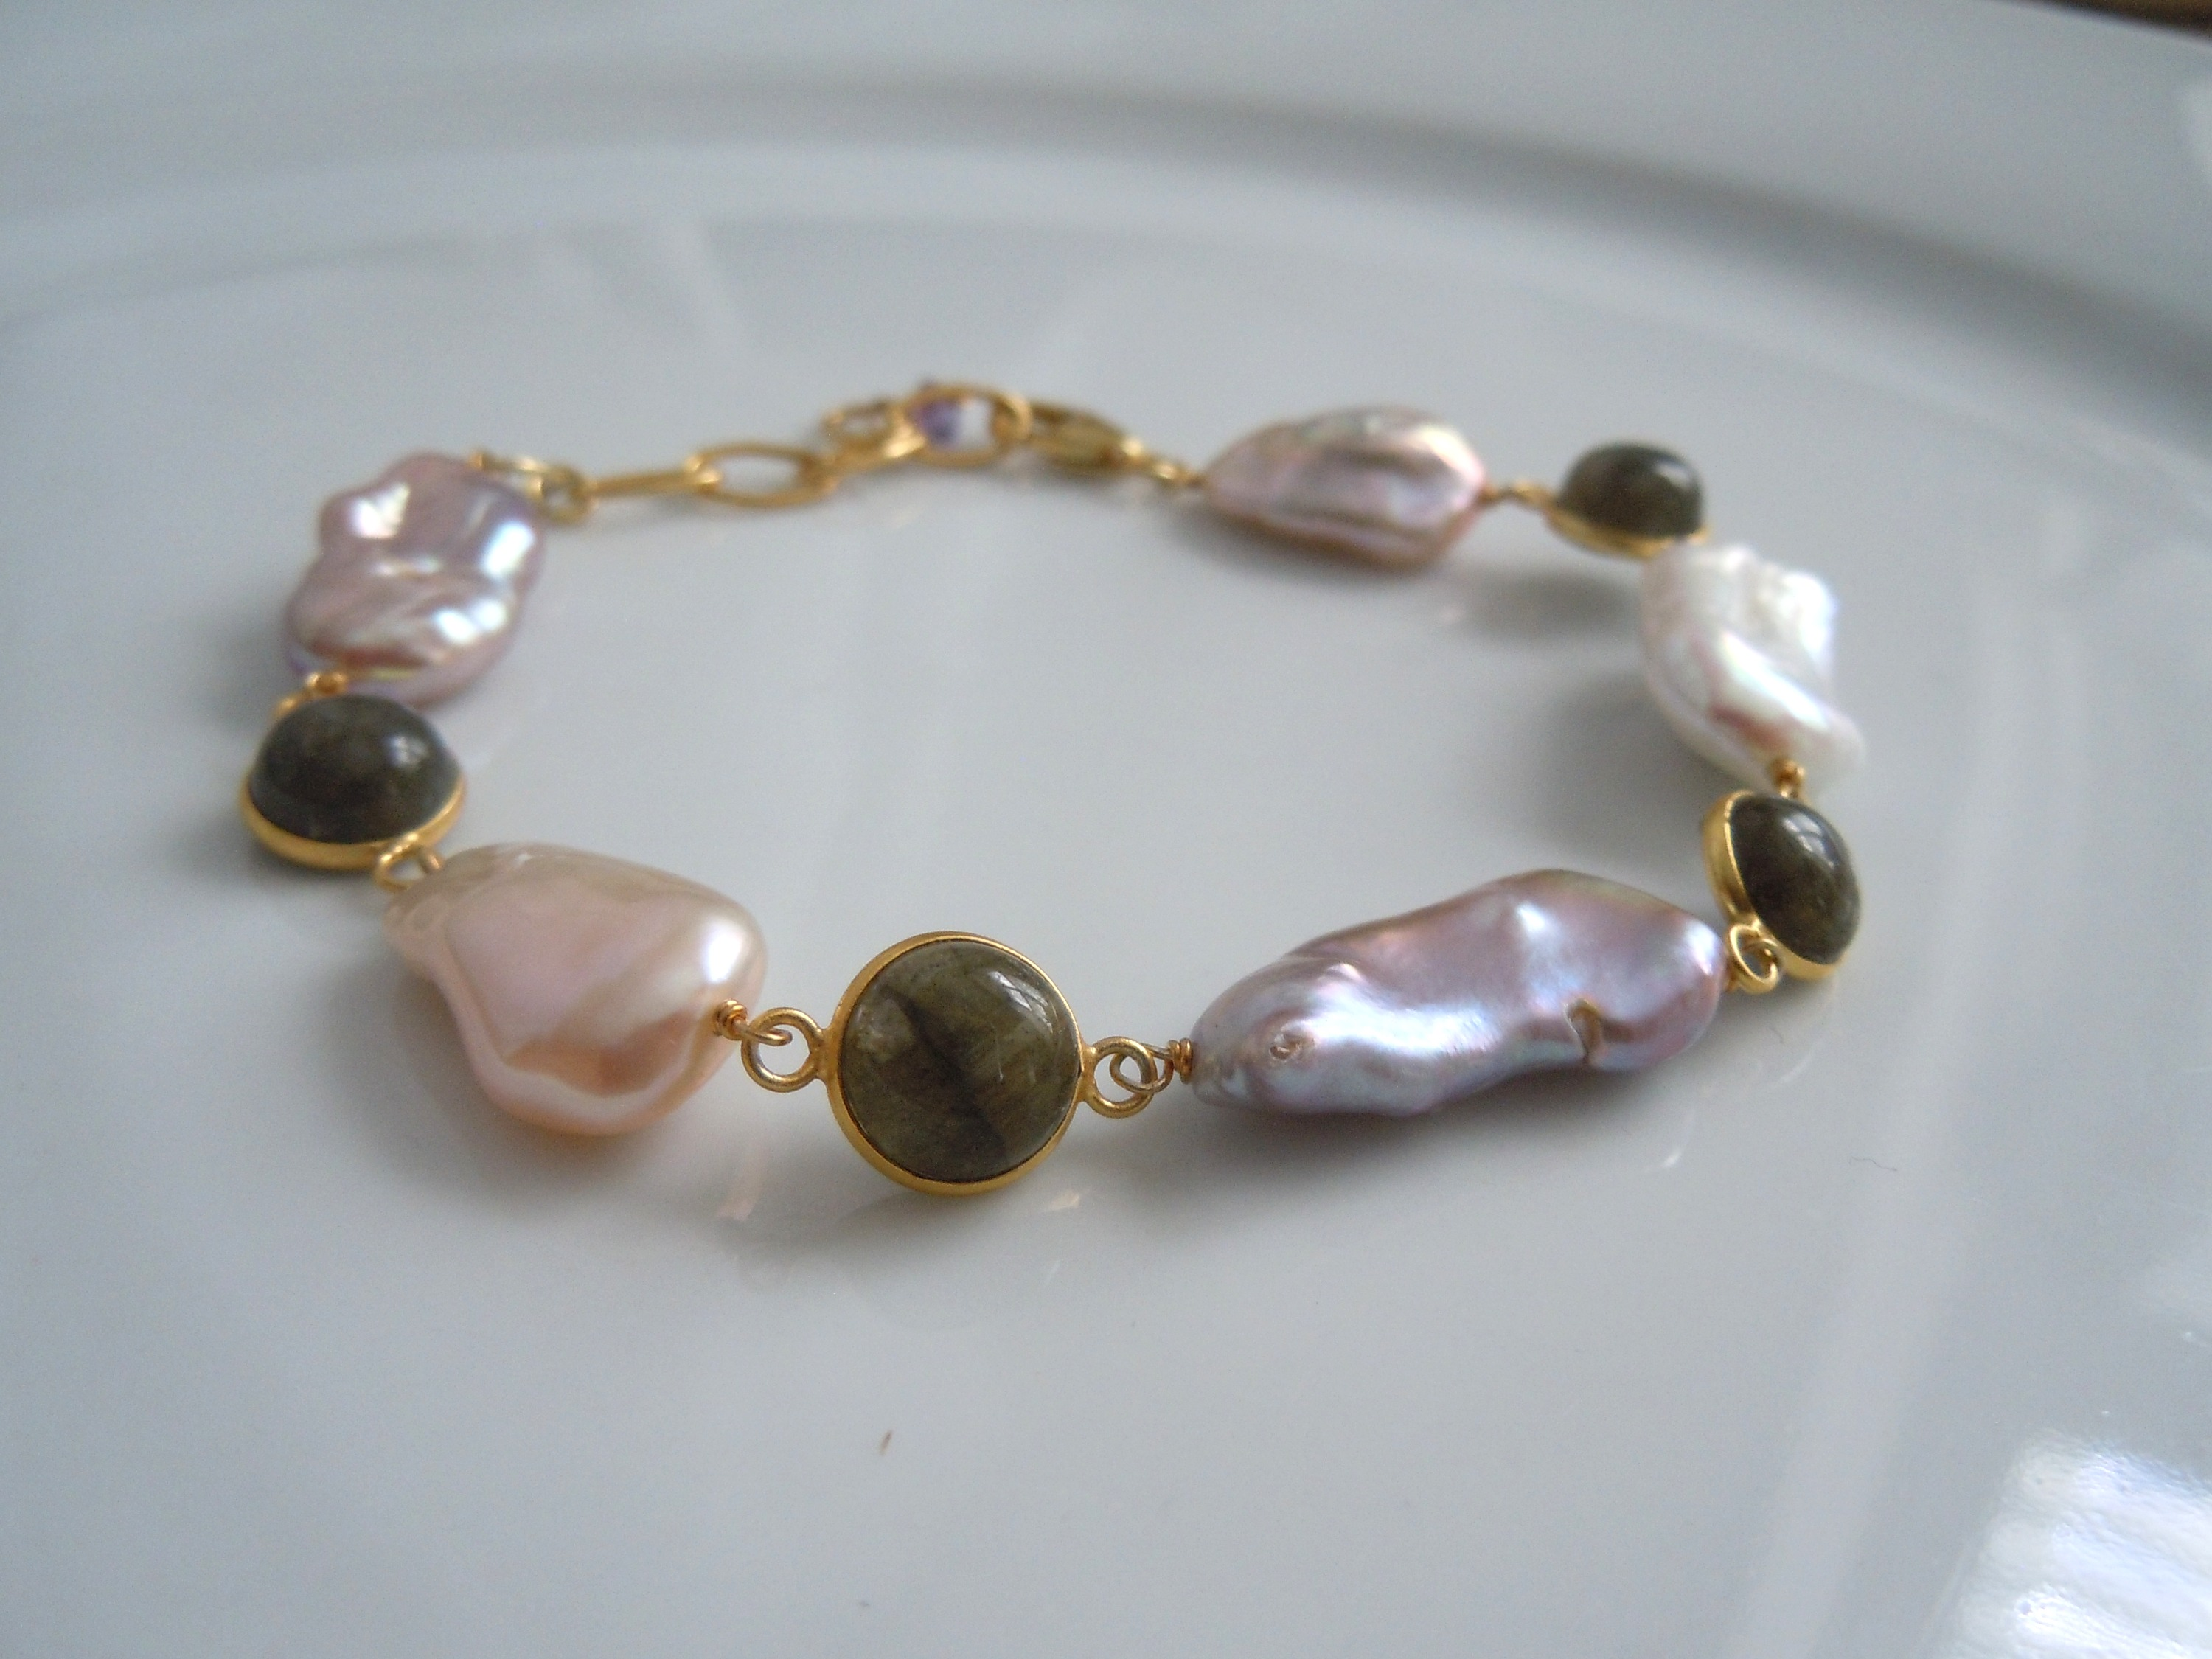 Freshwater Elongated Pearls with Labradorite Cabichons